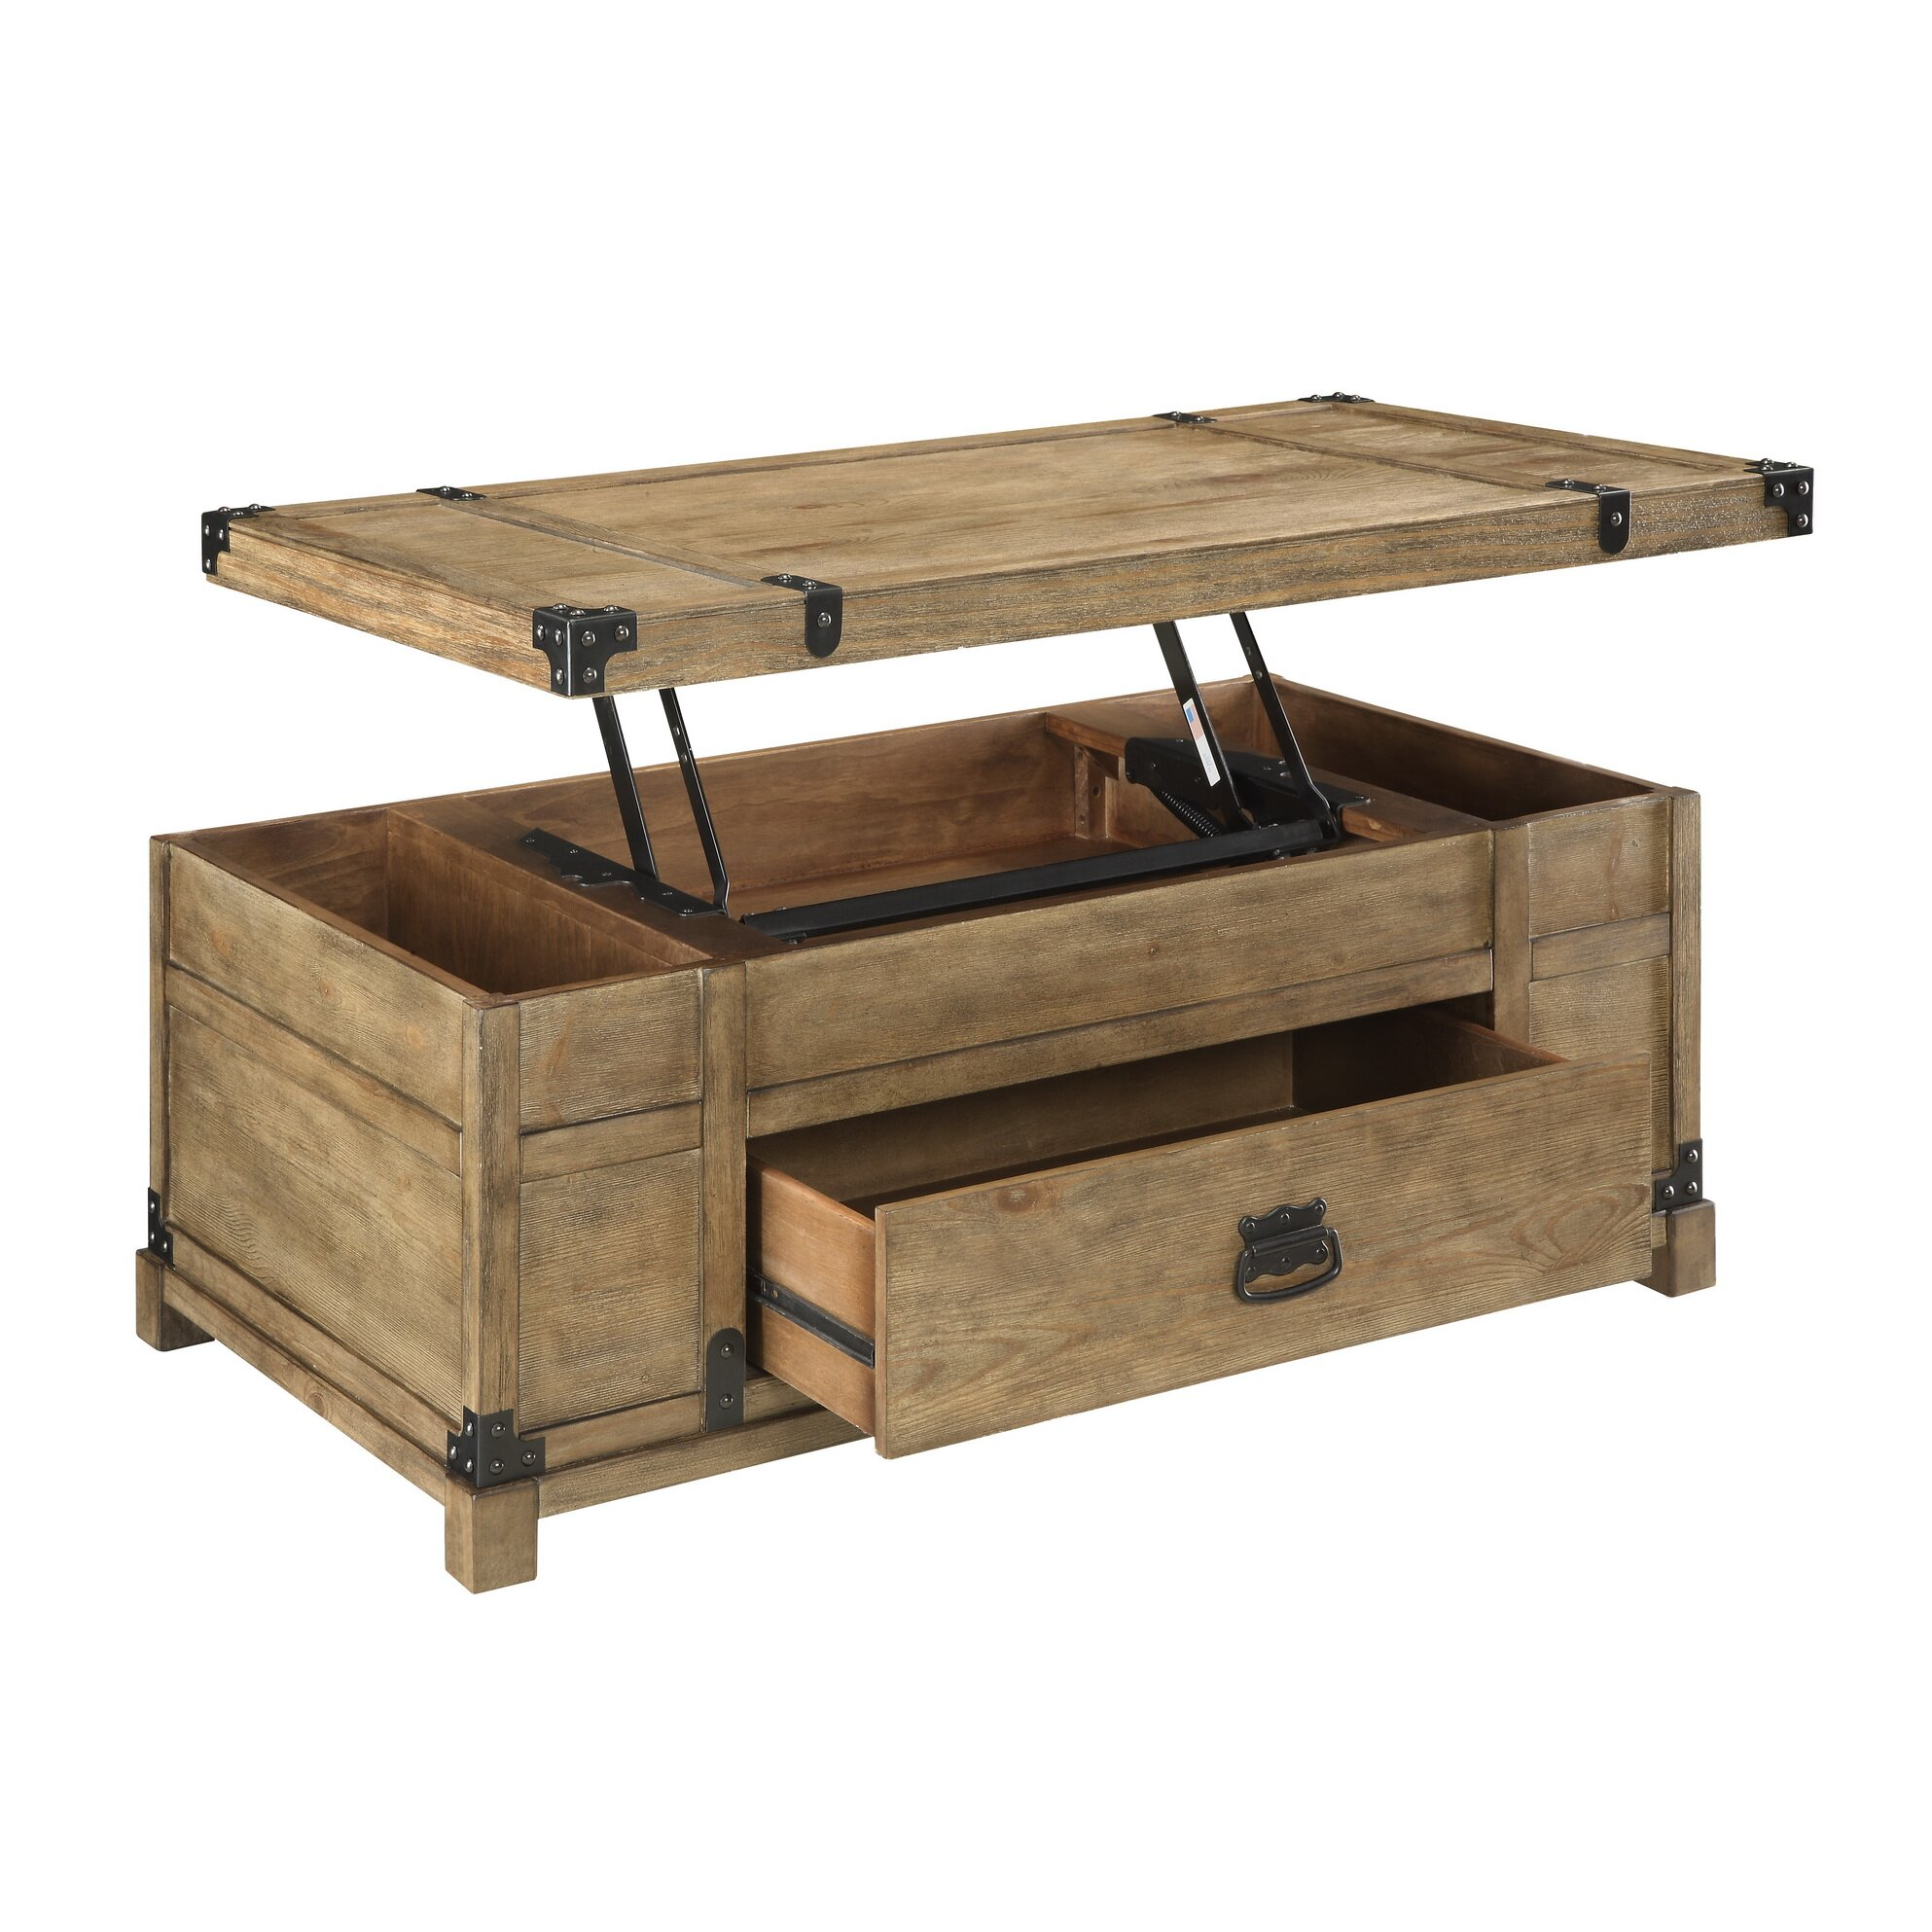 Small Coffee Tables That Lift Up: Coast To Coast Imports Treasure Coffee Table With Lift Top